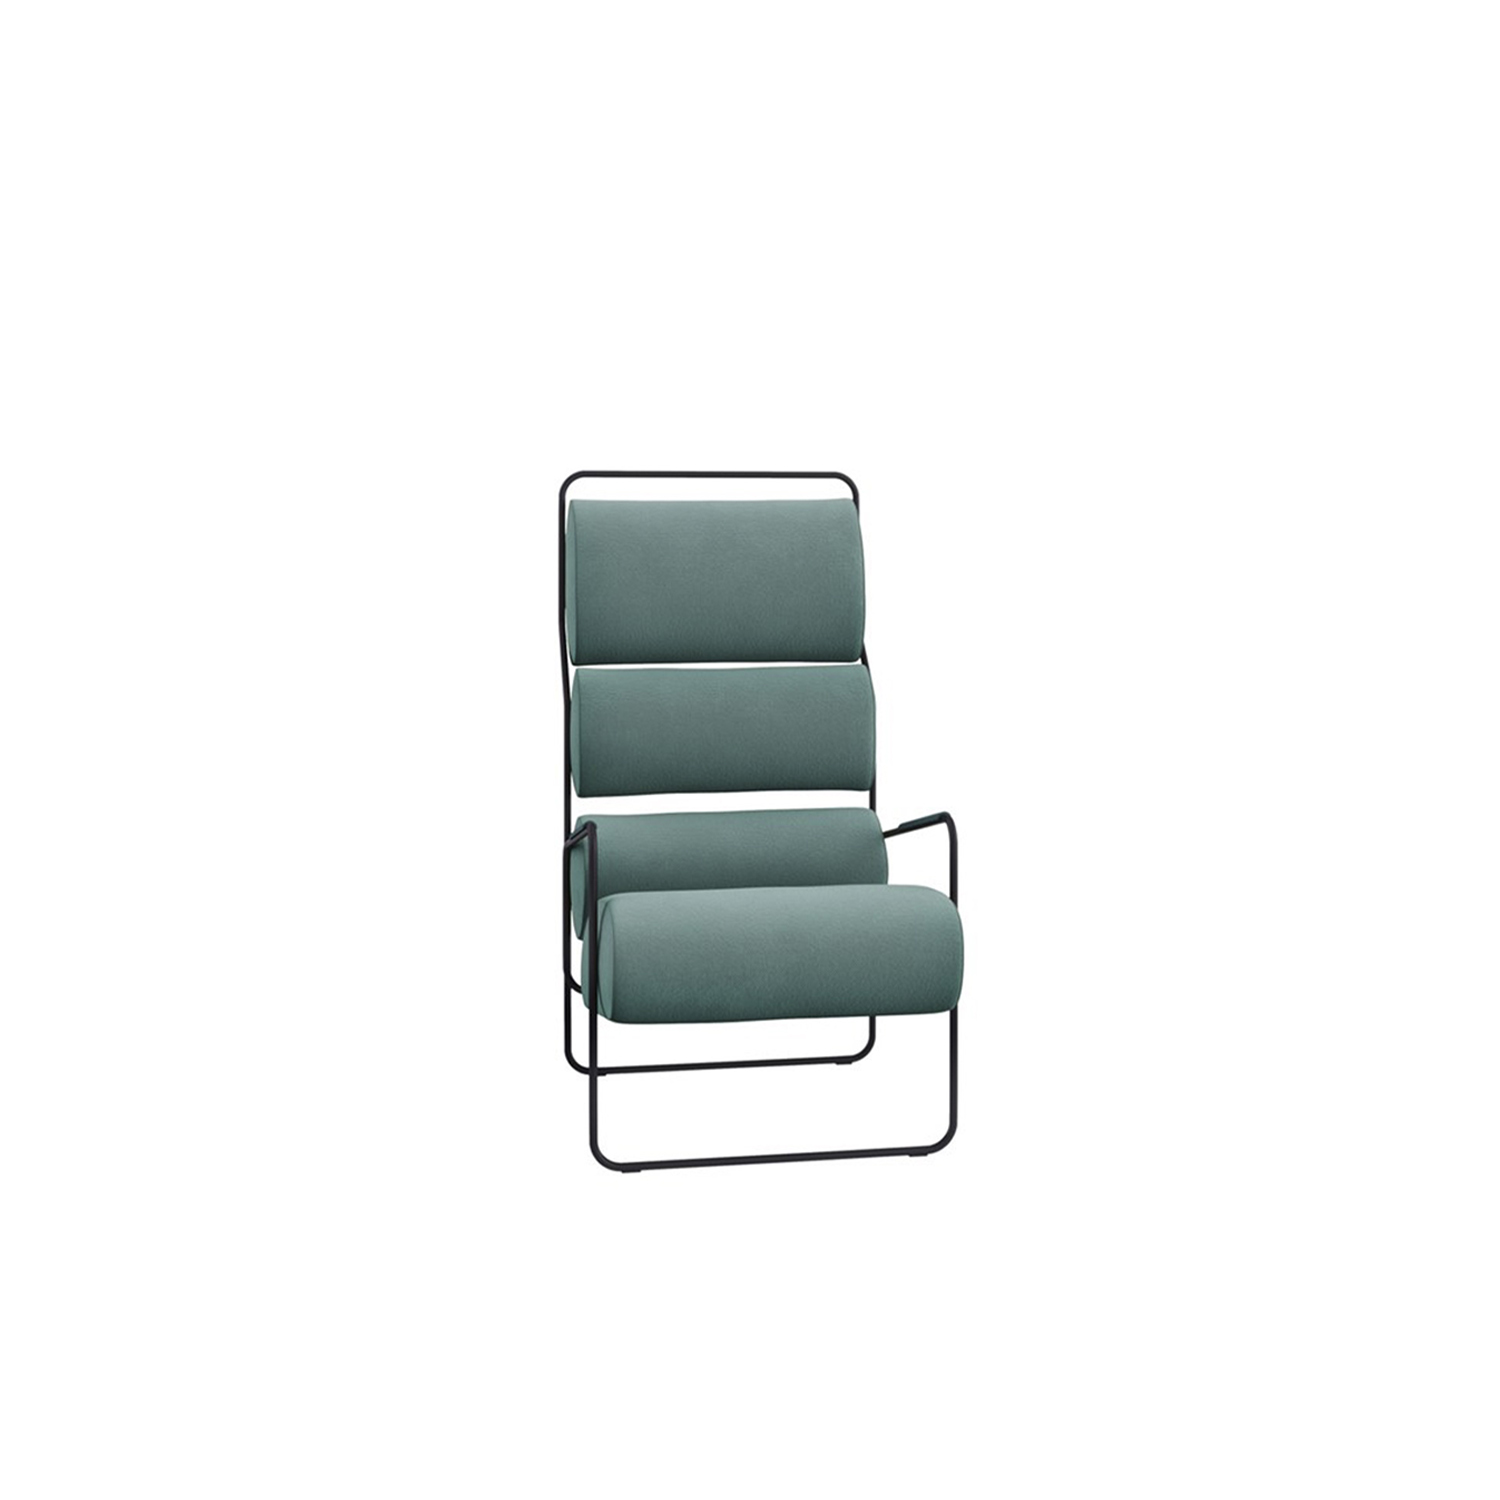 Sancarlo Lounge Armchair - Sancarlo is a reissue of a classic designed by Achille Castiglioni.‎ Both versions, armchair and sofa, are composed of a simple, linear, curved tubular frame, on which a number of upholstered cushions are positioned.‎ A ground-breaking concept when it was first presented, it has now been made even more effective with differentiated foam filling, in which the density varies according to the region of the body to be supported.‎ Full of character, Sancarlo is a veritable icon of 20th-century design.‎